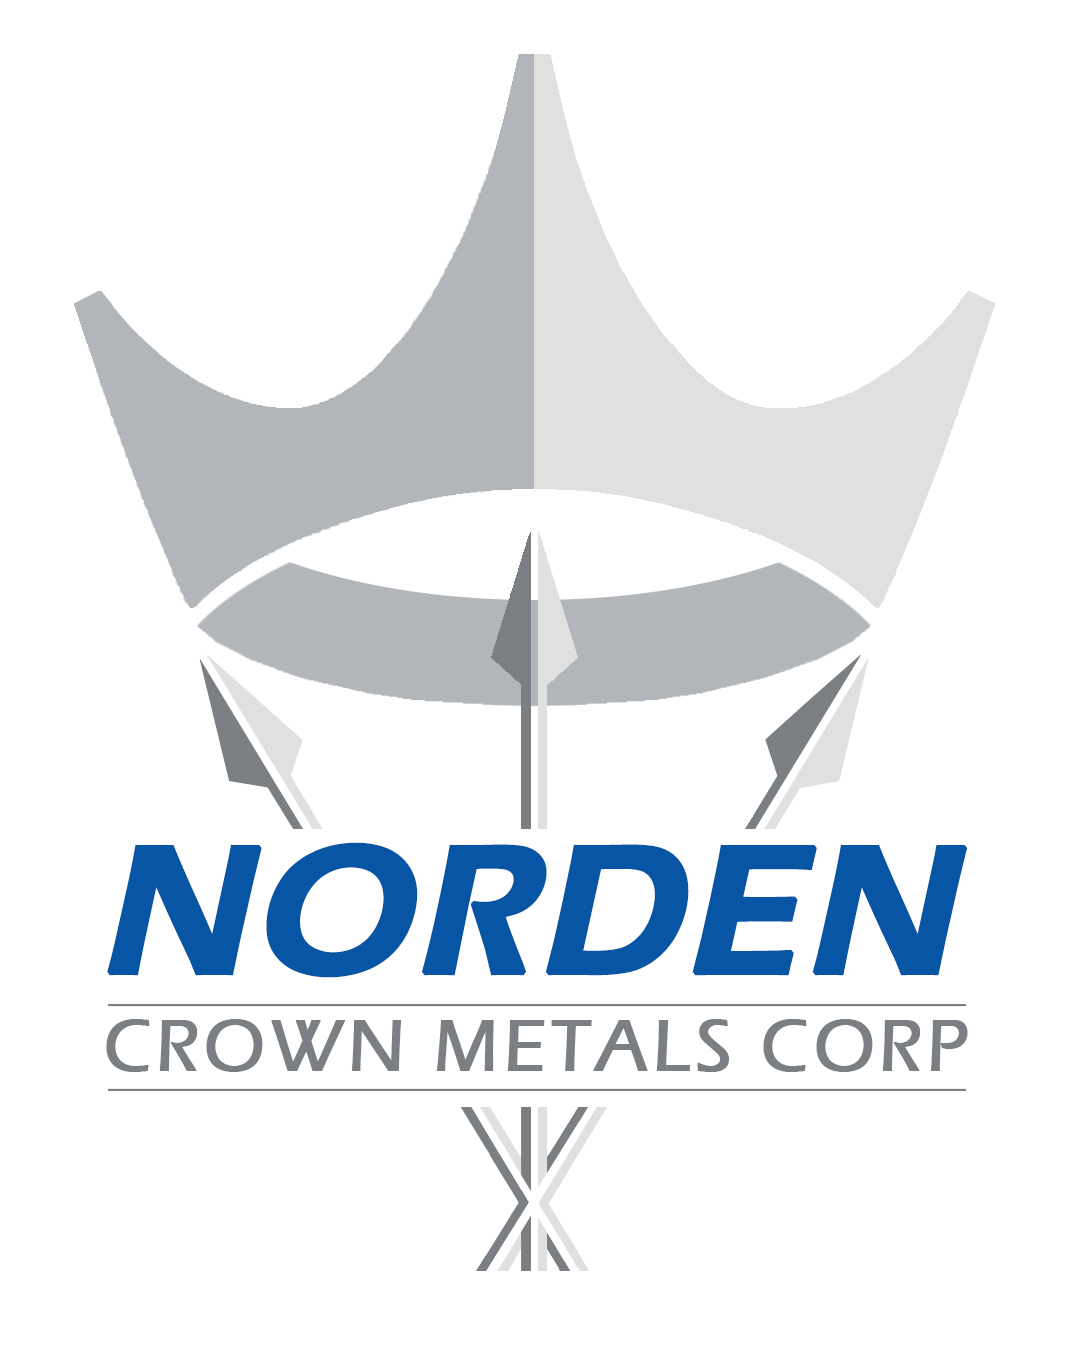 Norden Crown Metals Corp.